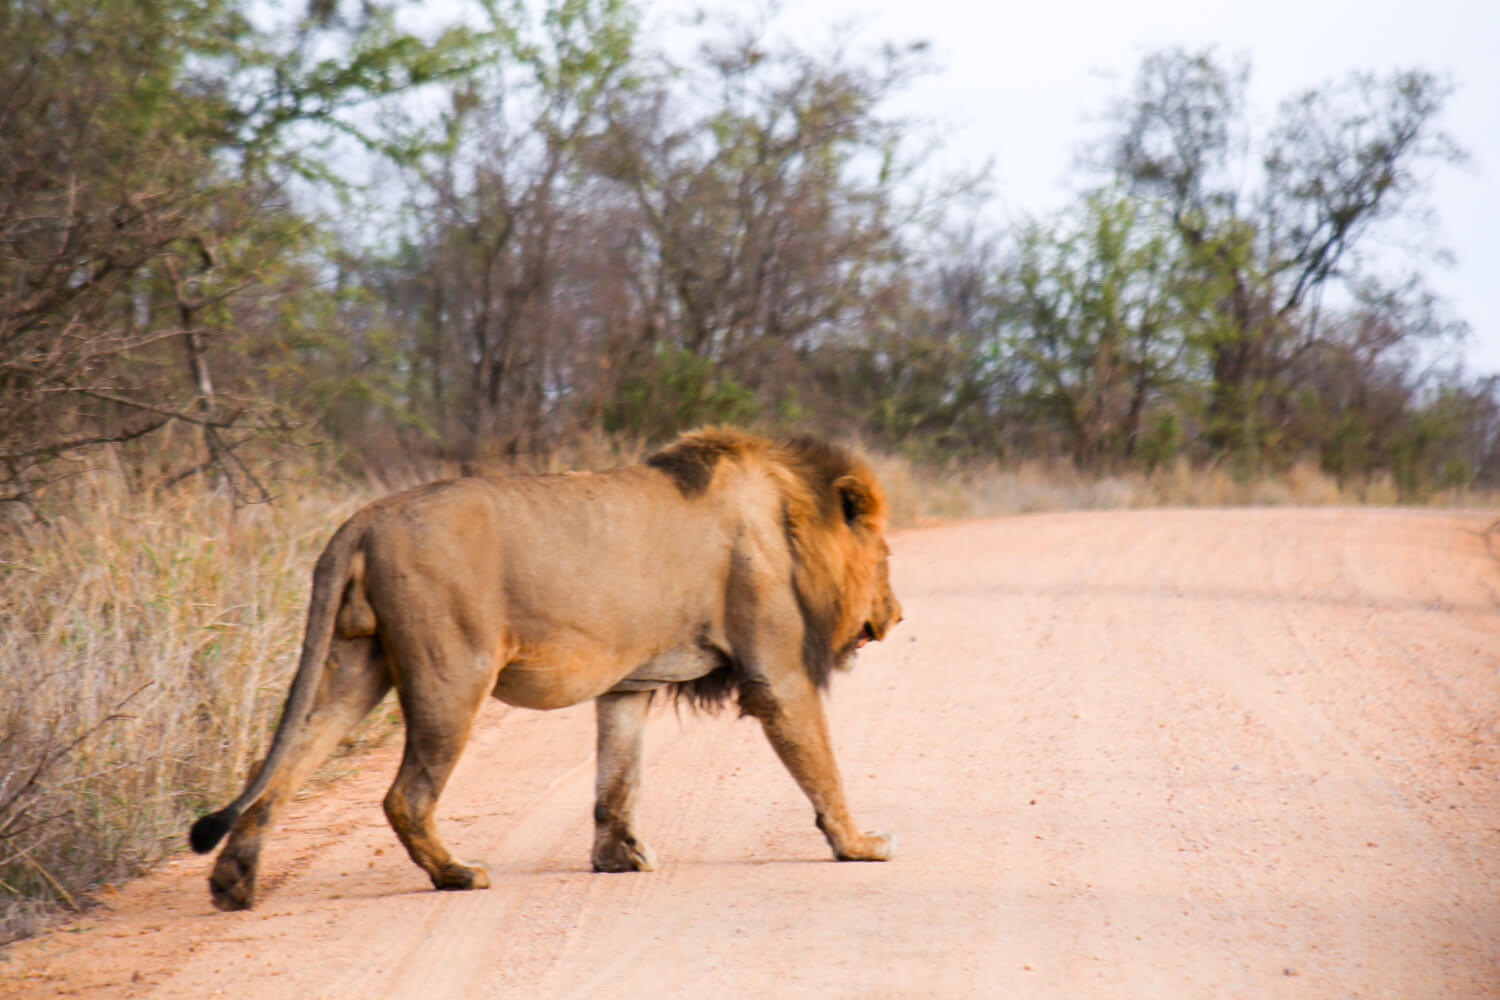 A large male lion crosses the road in Kruger National Park